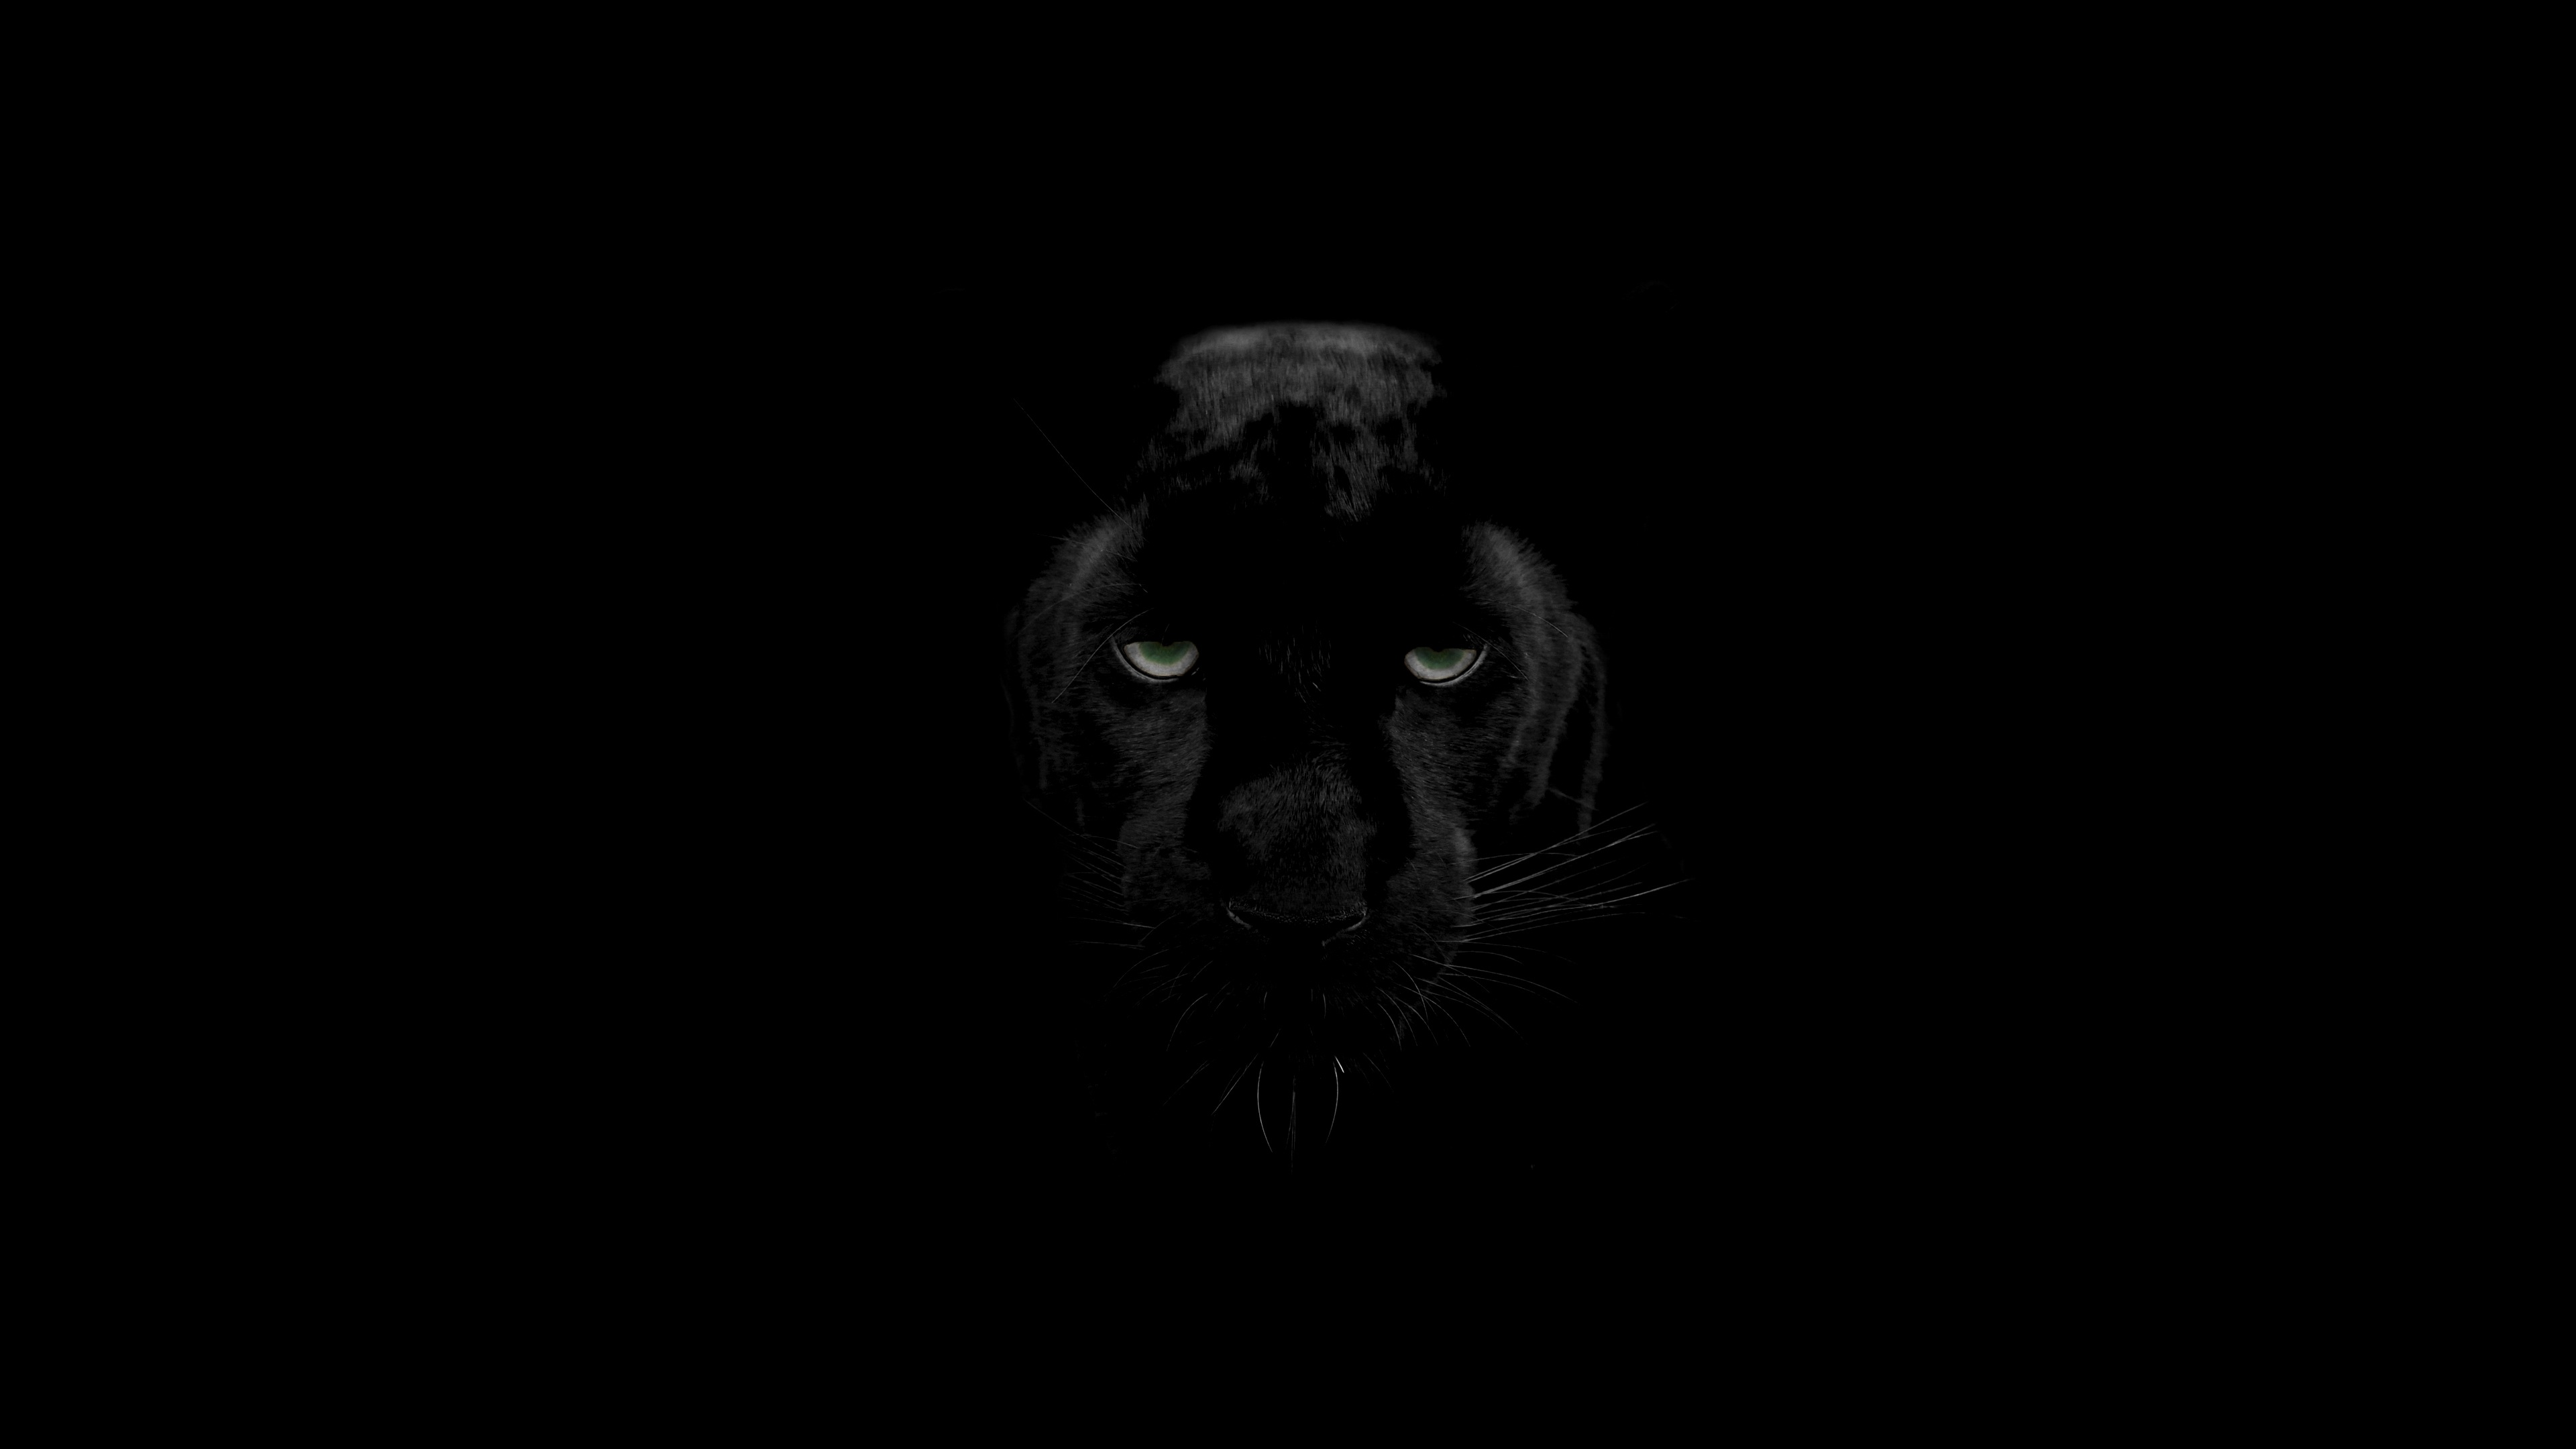 Iphone 6s Carbon Fiber Wallpaper Black Panther 4k Wallpapers Hd Wallpapers Id 25460